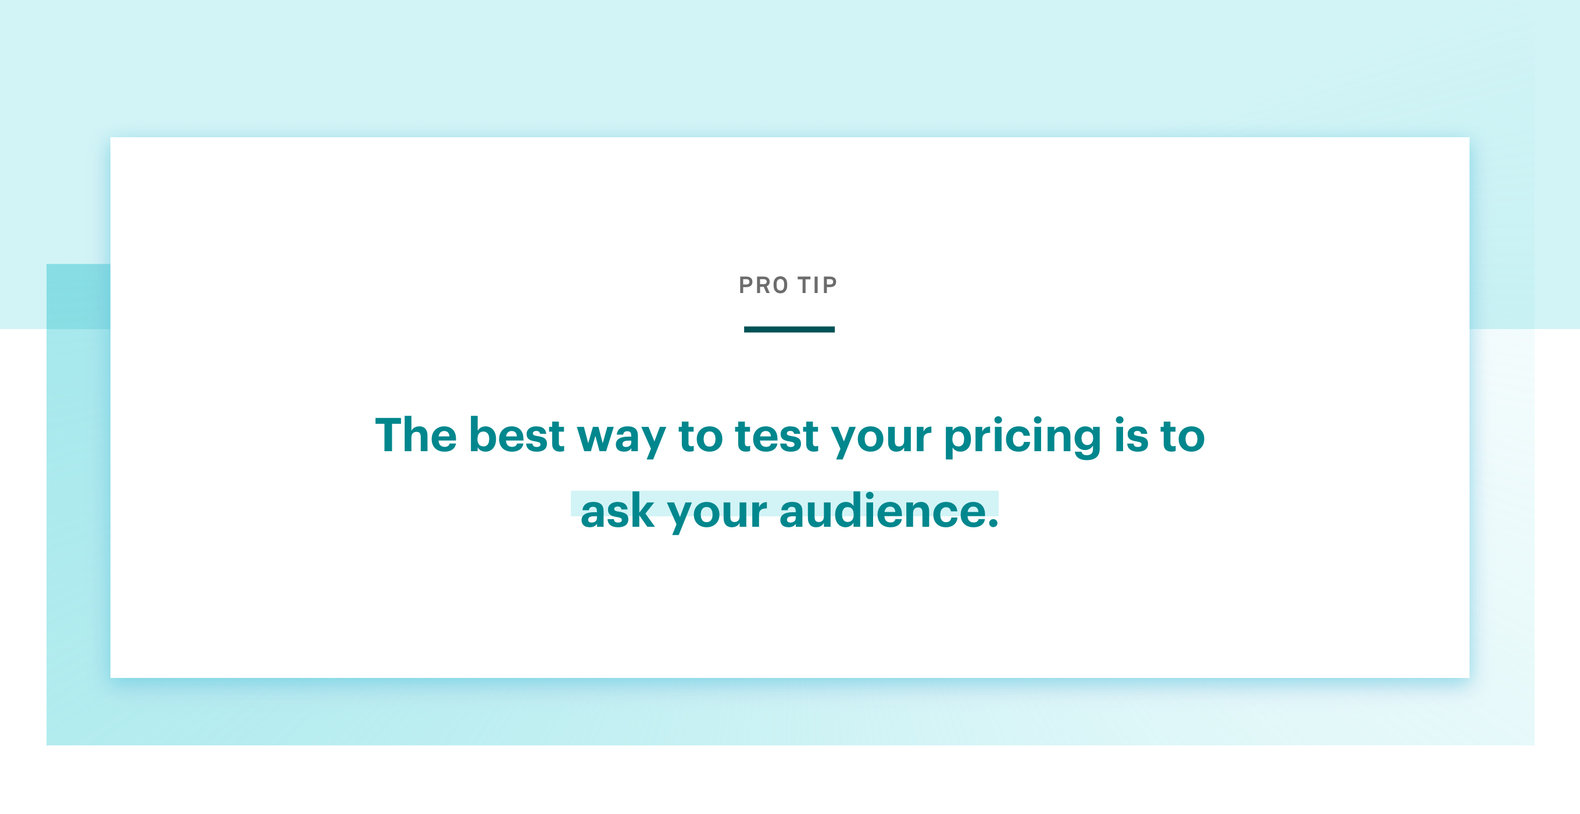 Pro Tip: The best way to text your pricing is to ask your audience.